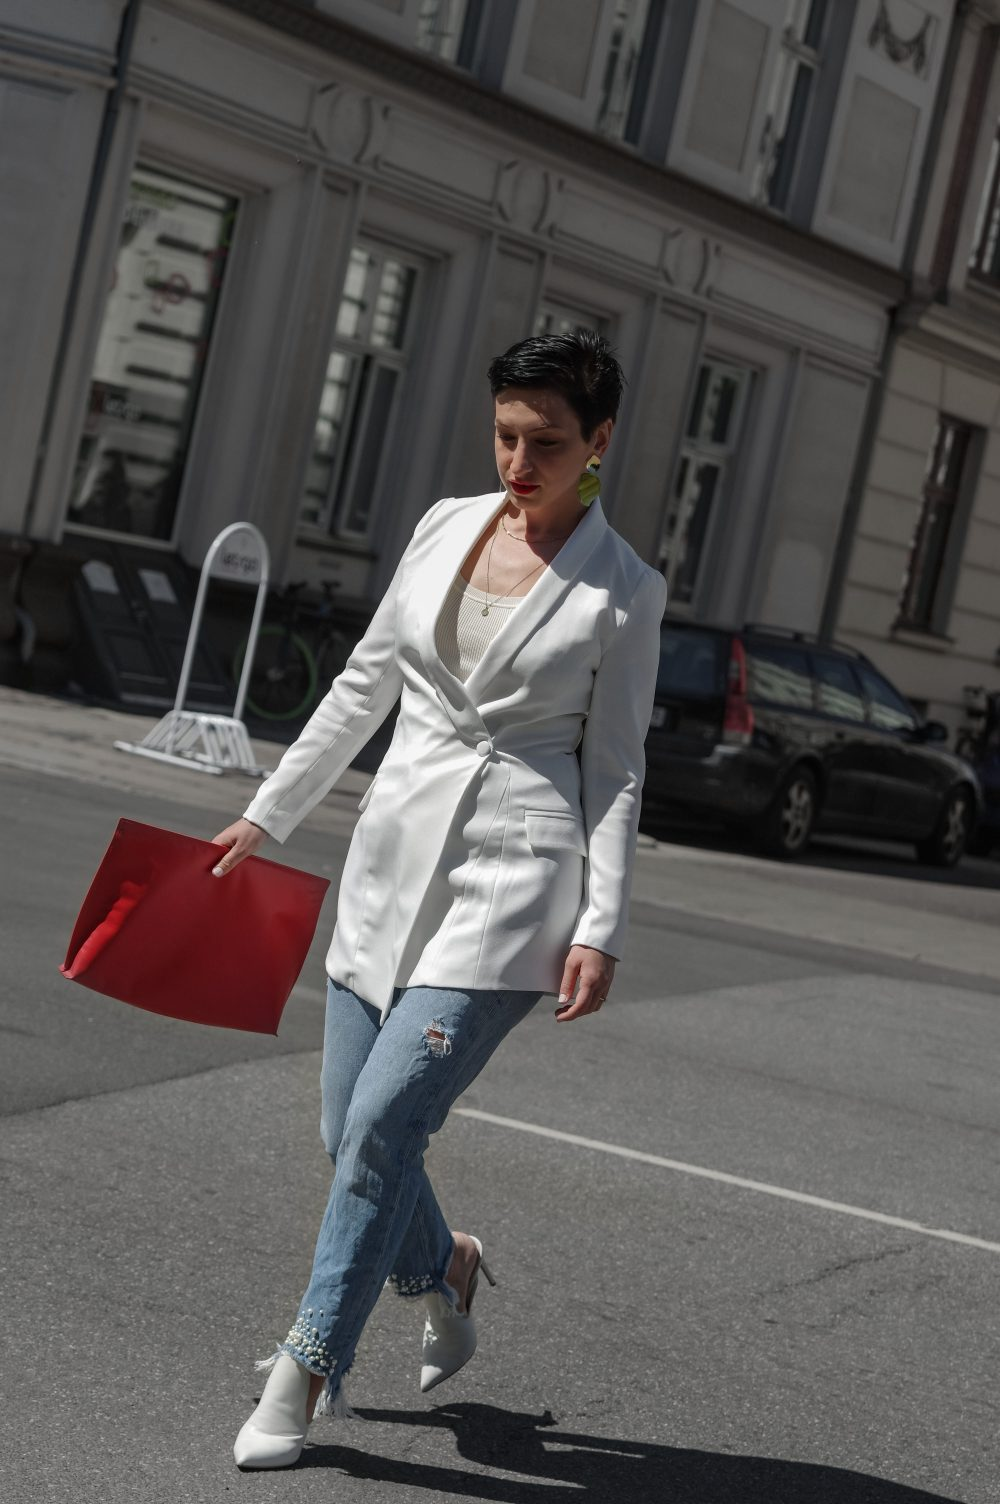 work wear, white blazer, spring outfit idea, how to make a great first impression at work or in life, streetstyle, scandinavian, minimal fashion3